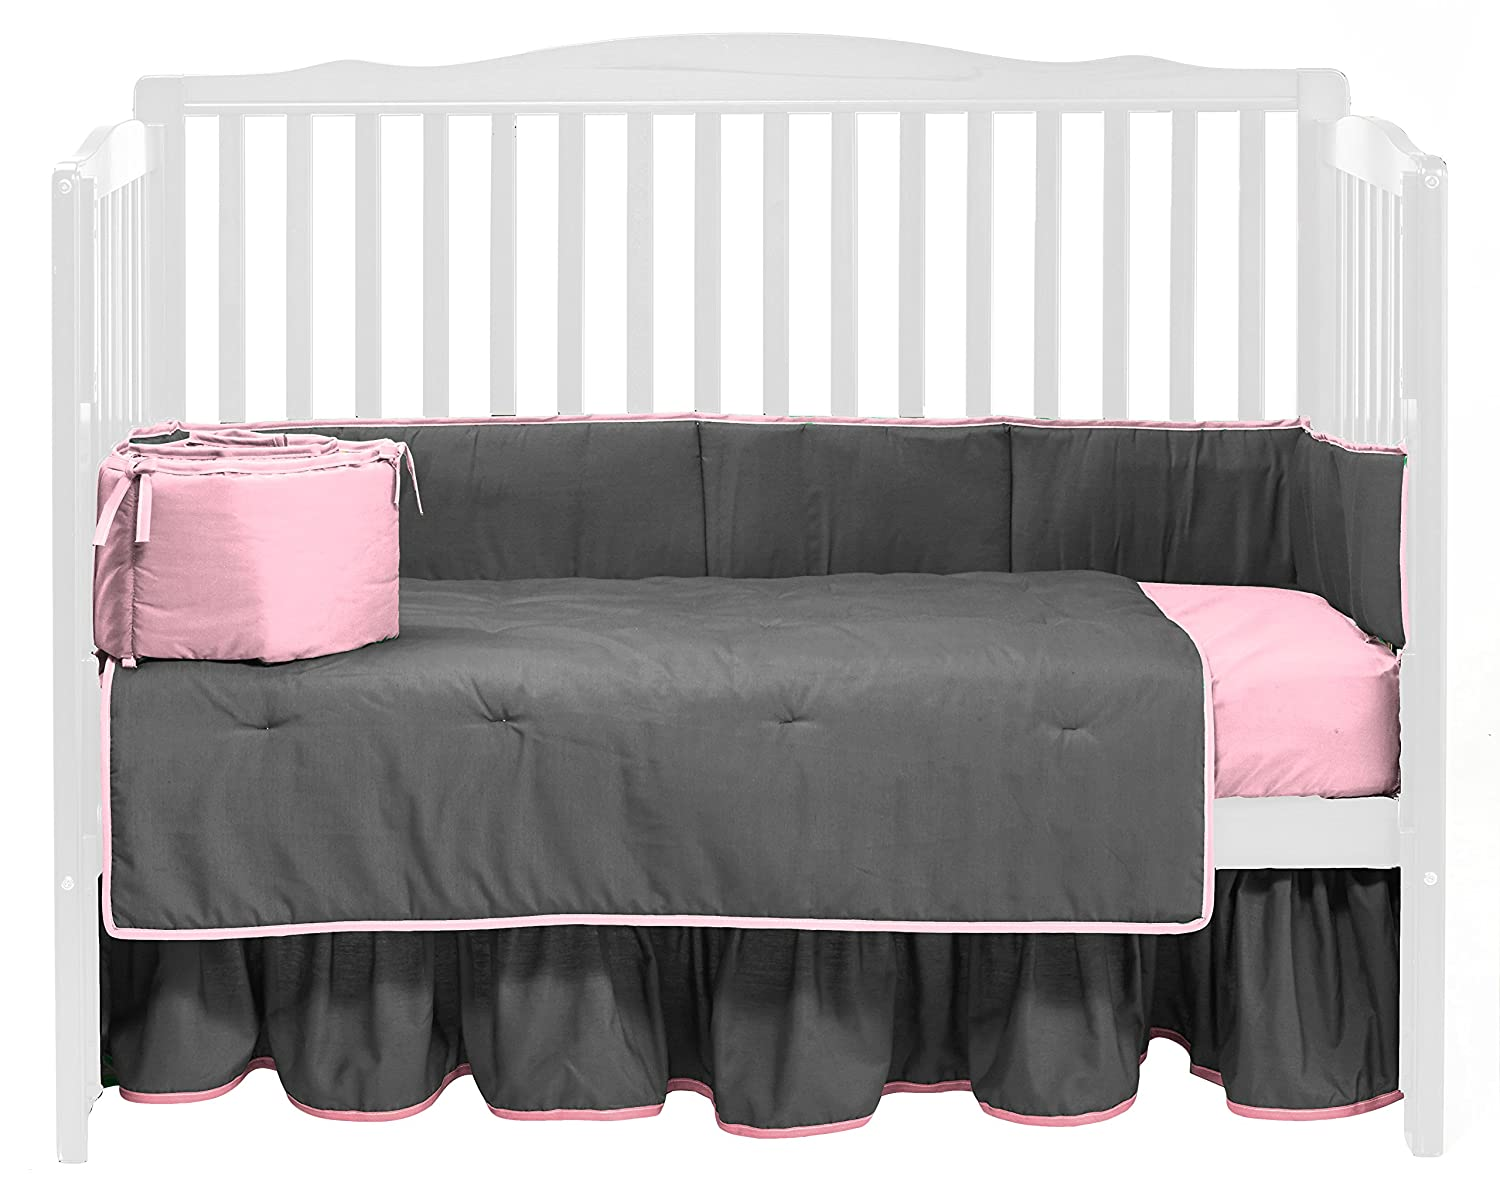 Baby Doll Bedding Solid Reversible Crib Bedding Set, Grey/Pink by BabyDoll Bedding   B00JGNYIQY